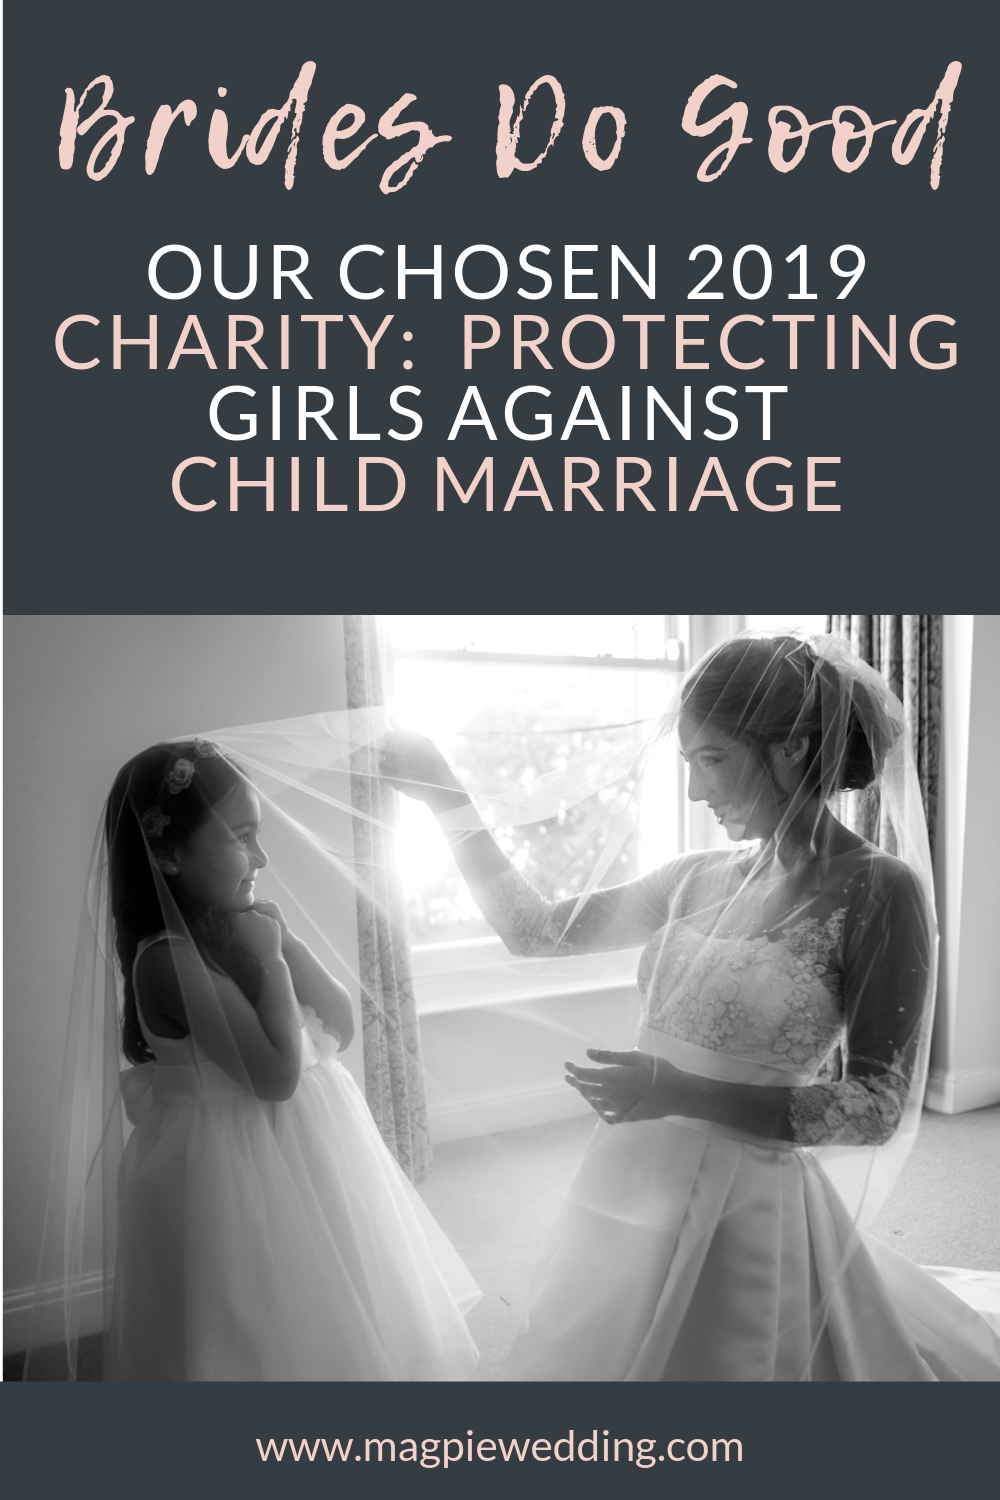 Our Chosen 2019 Charity: Brides Do Good, Protecting Girls Against Child Marriage